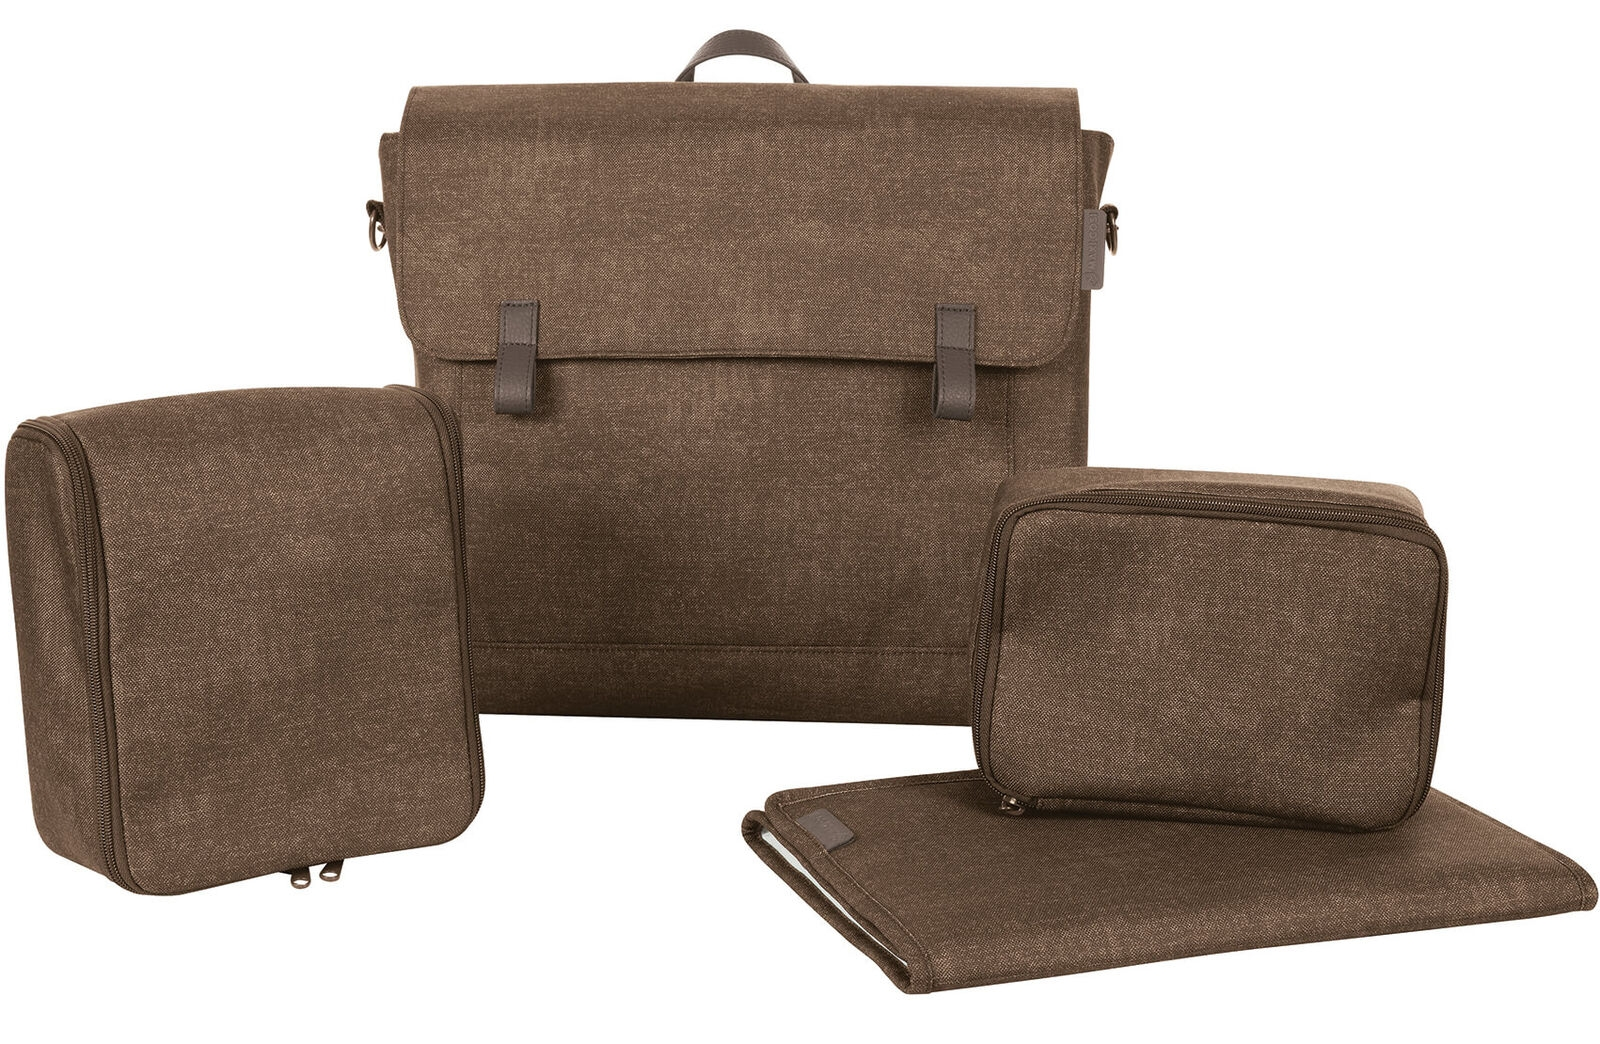 Sac à langer Modern Bag | Nomad Brown Bébé Confort Outlet